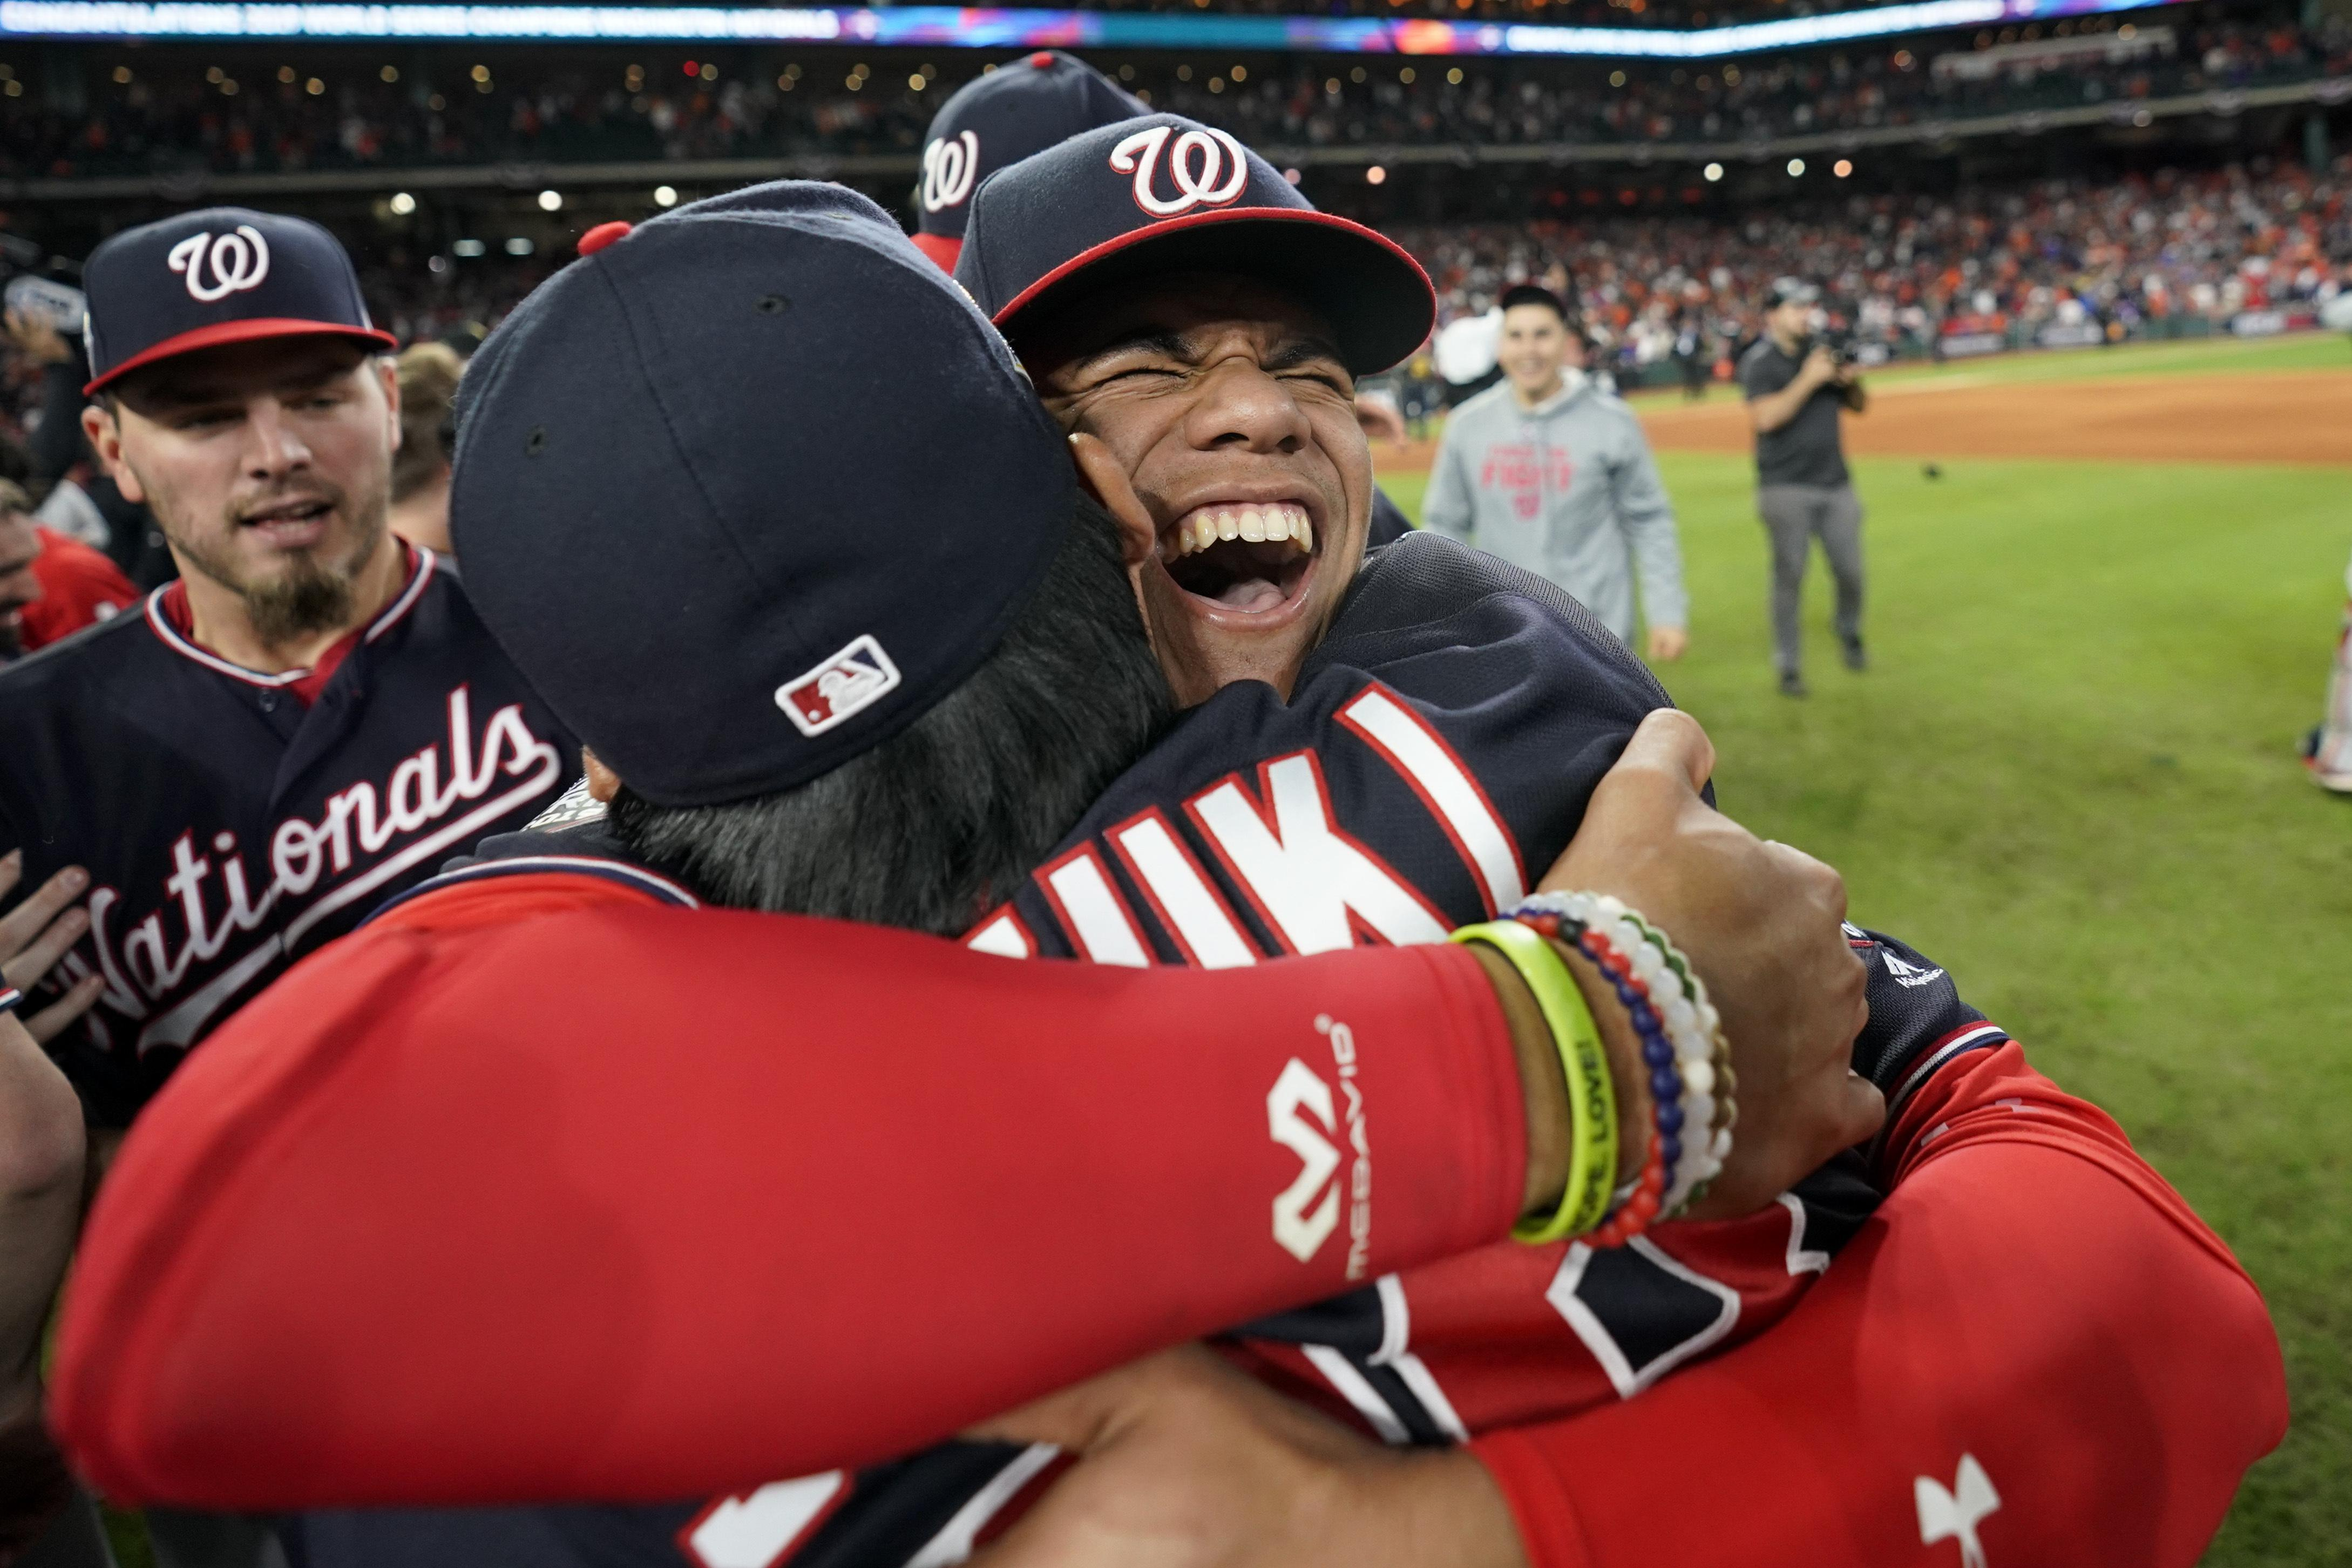 Not even a fairytale World Series finish could conceal baseball's warts